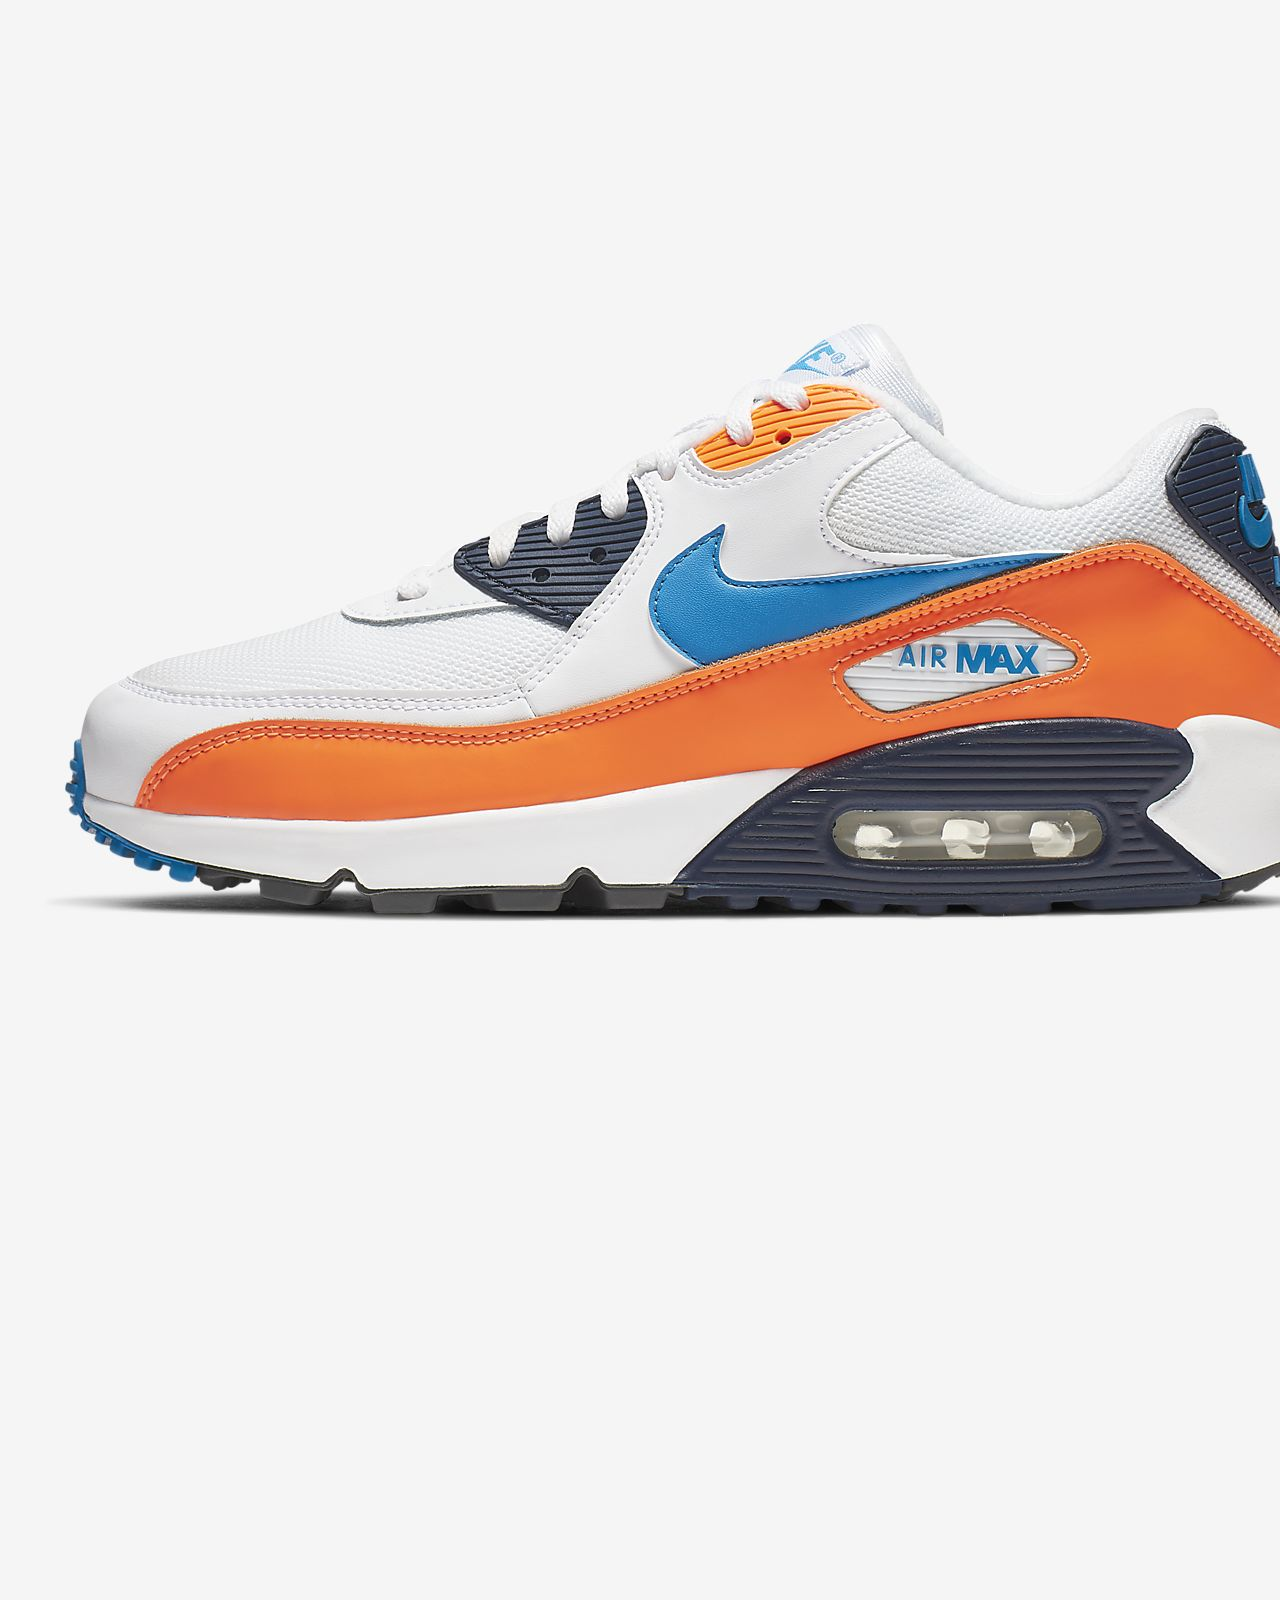 separation shoes 983f5 b25f3 ... Nike Air Max 90 Essential Men s Shoe